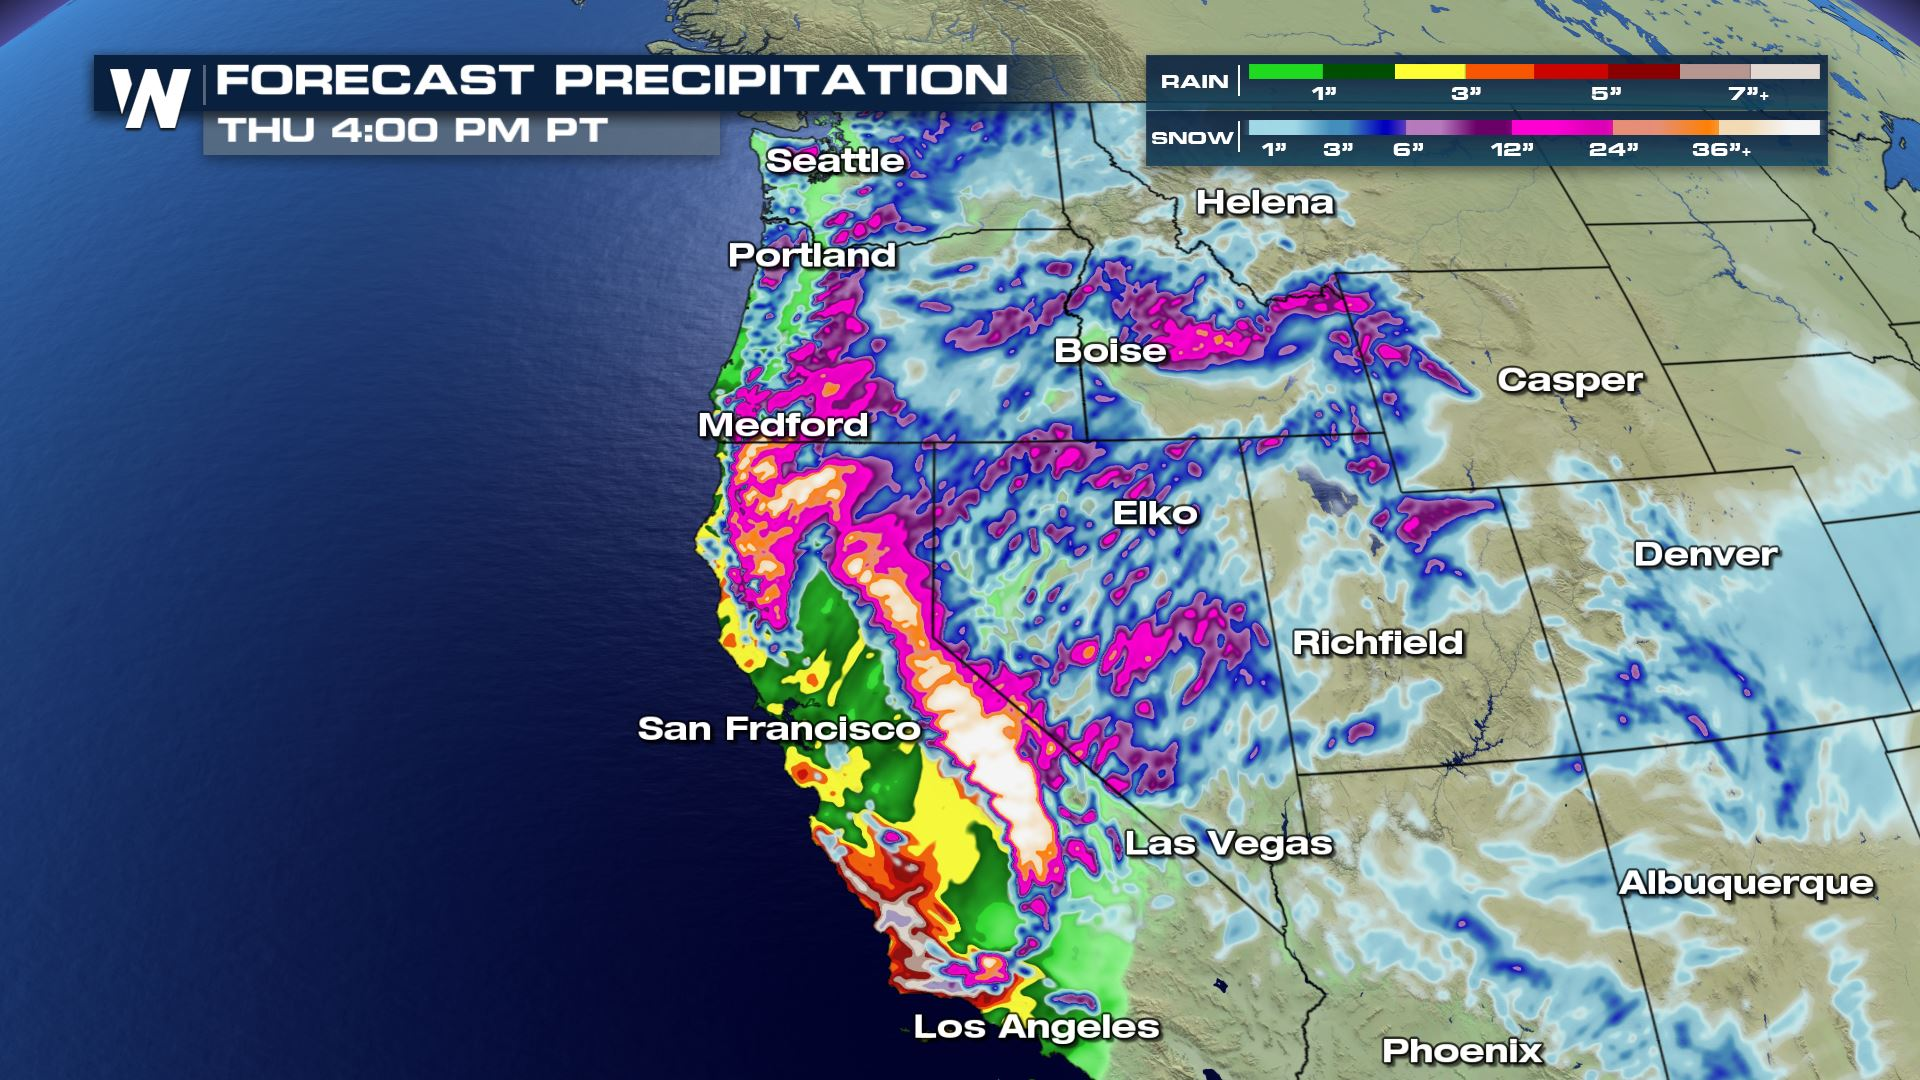 A More Potent, Longer Lived Storm to Hit the West